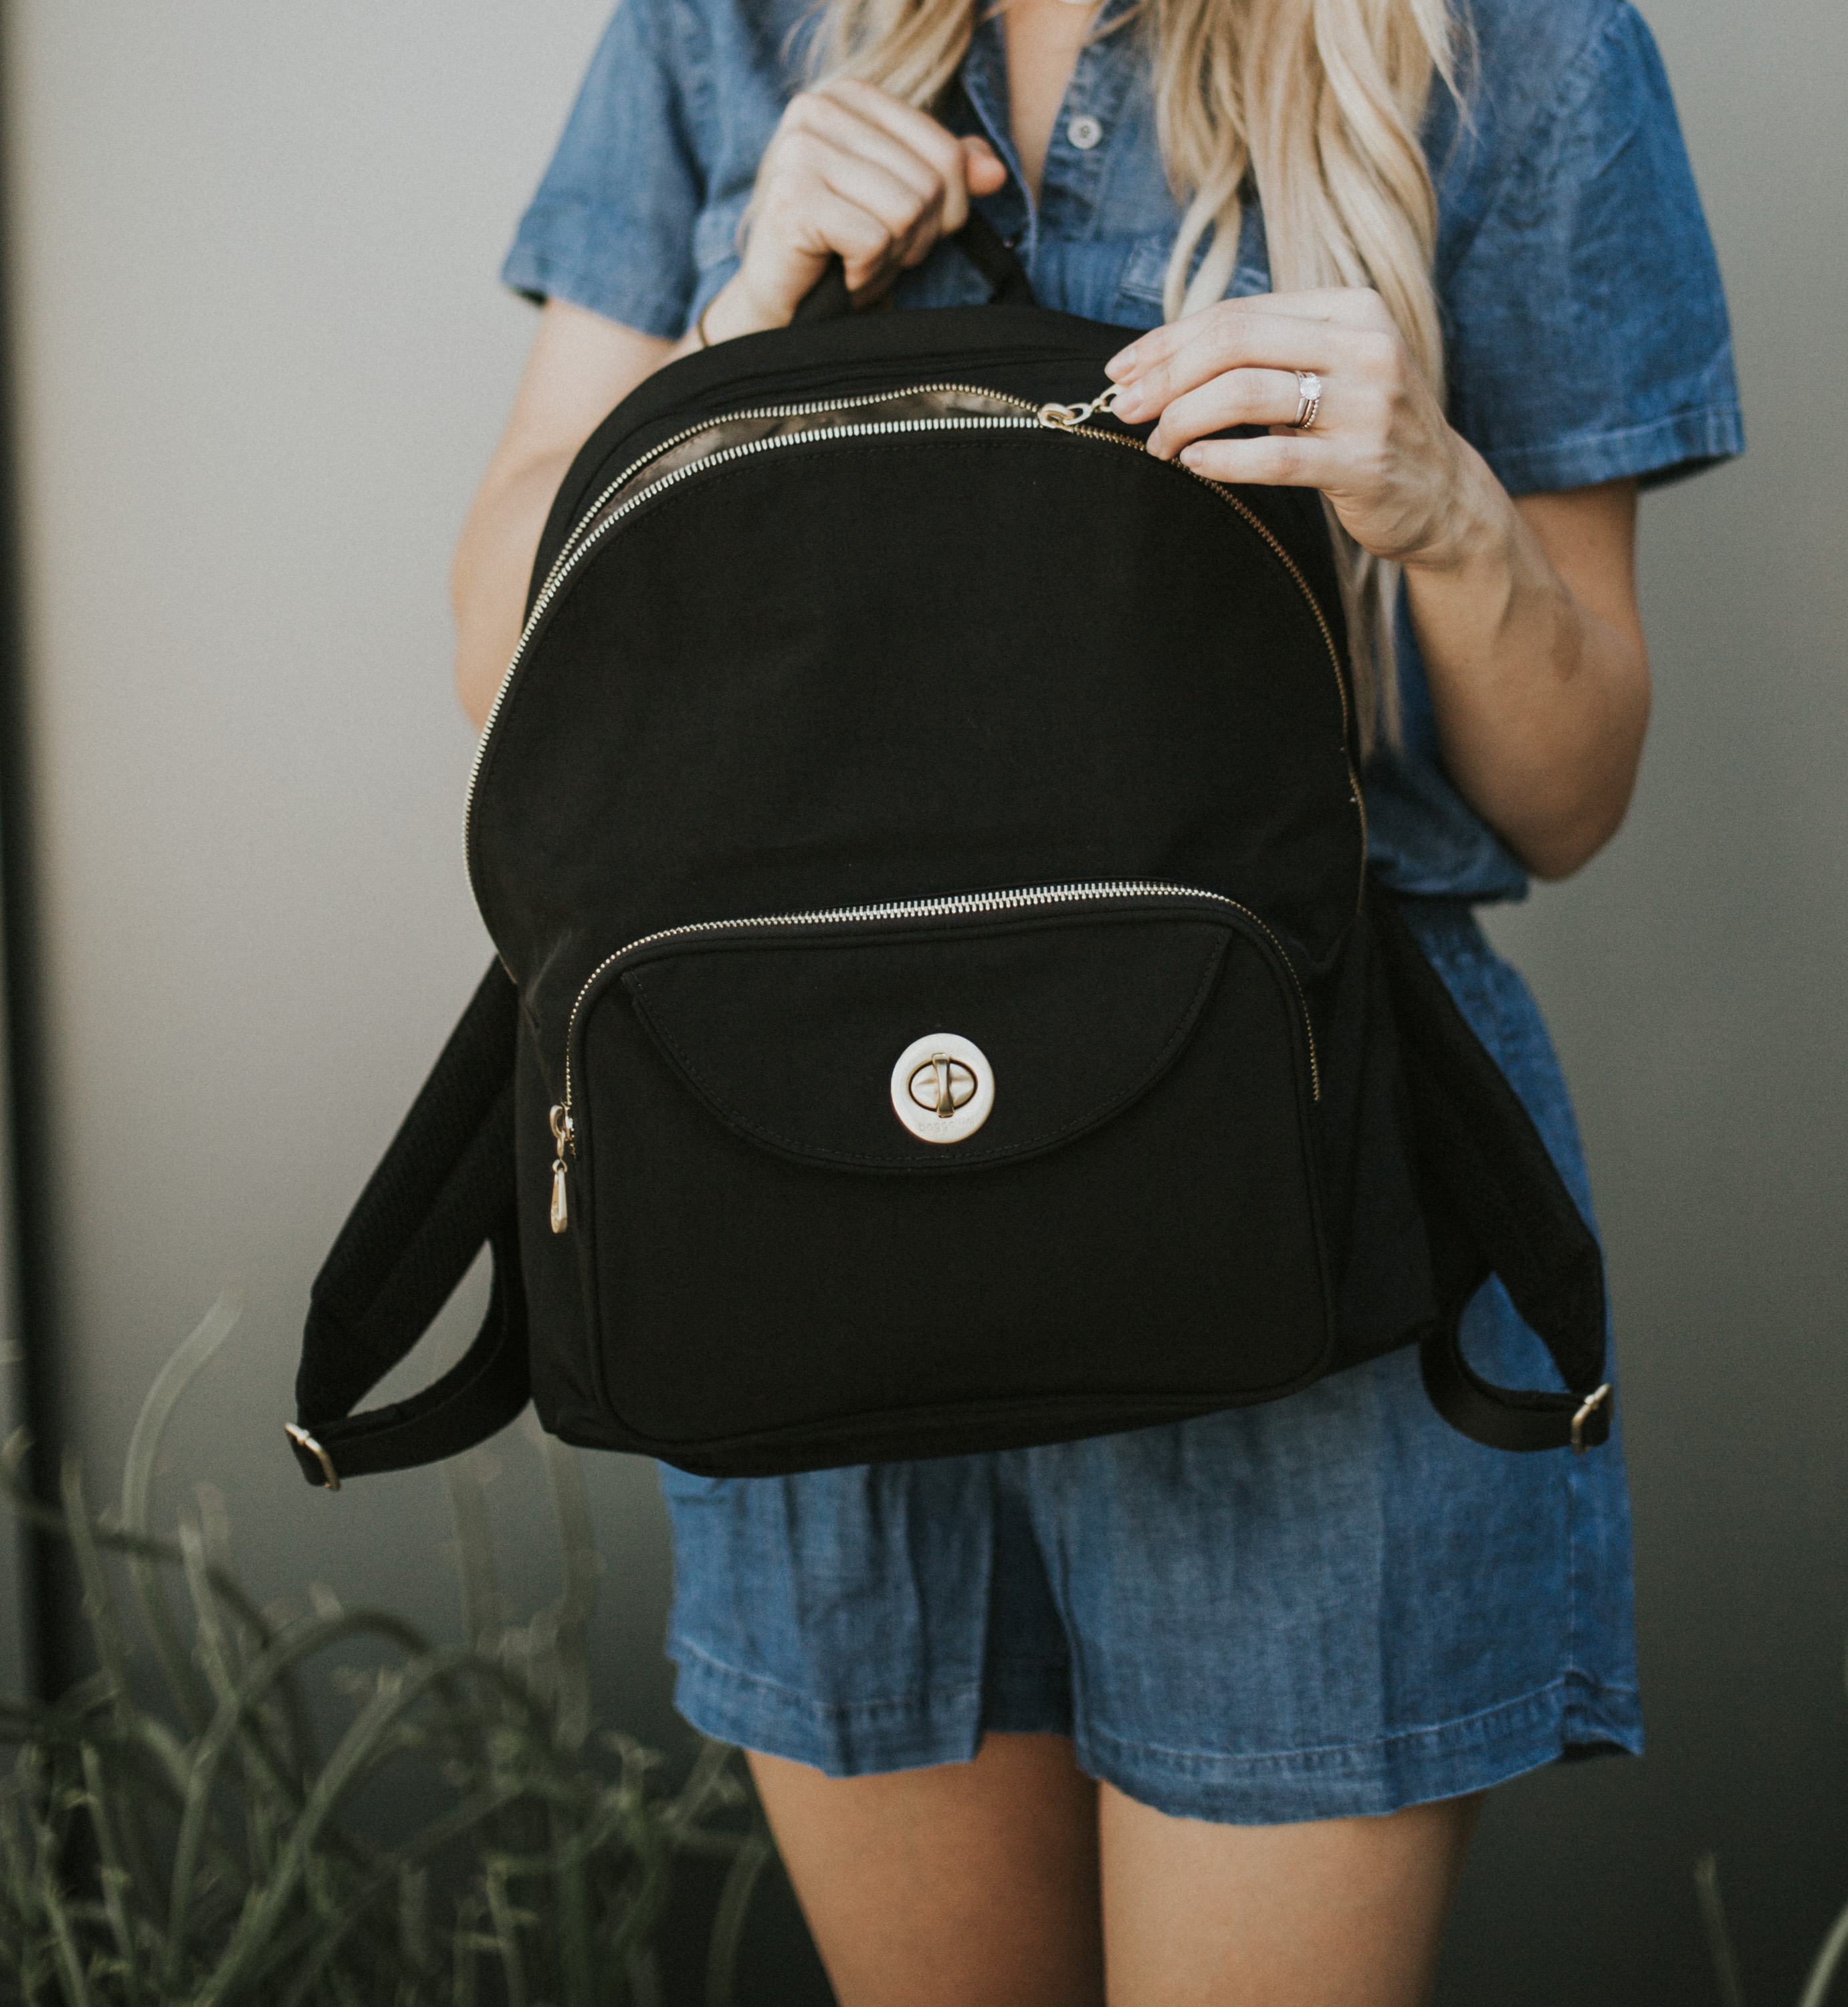 Affordable fashion blogger Larissa of Living in Color shares four reasons every mom should use a Zappos backpack diaper bag. Read more now.